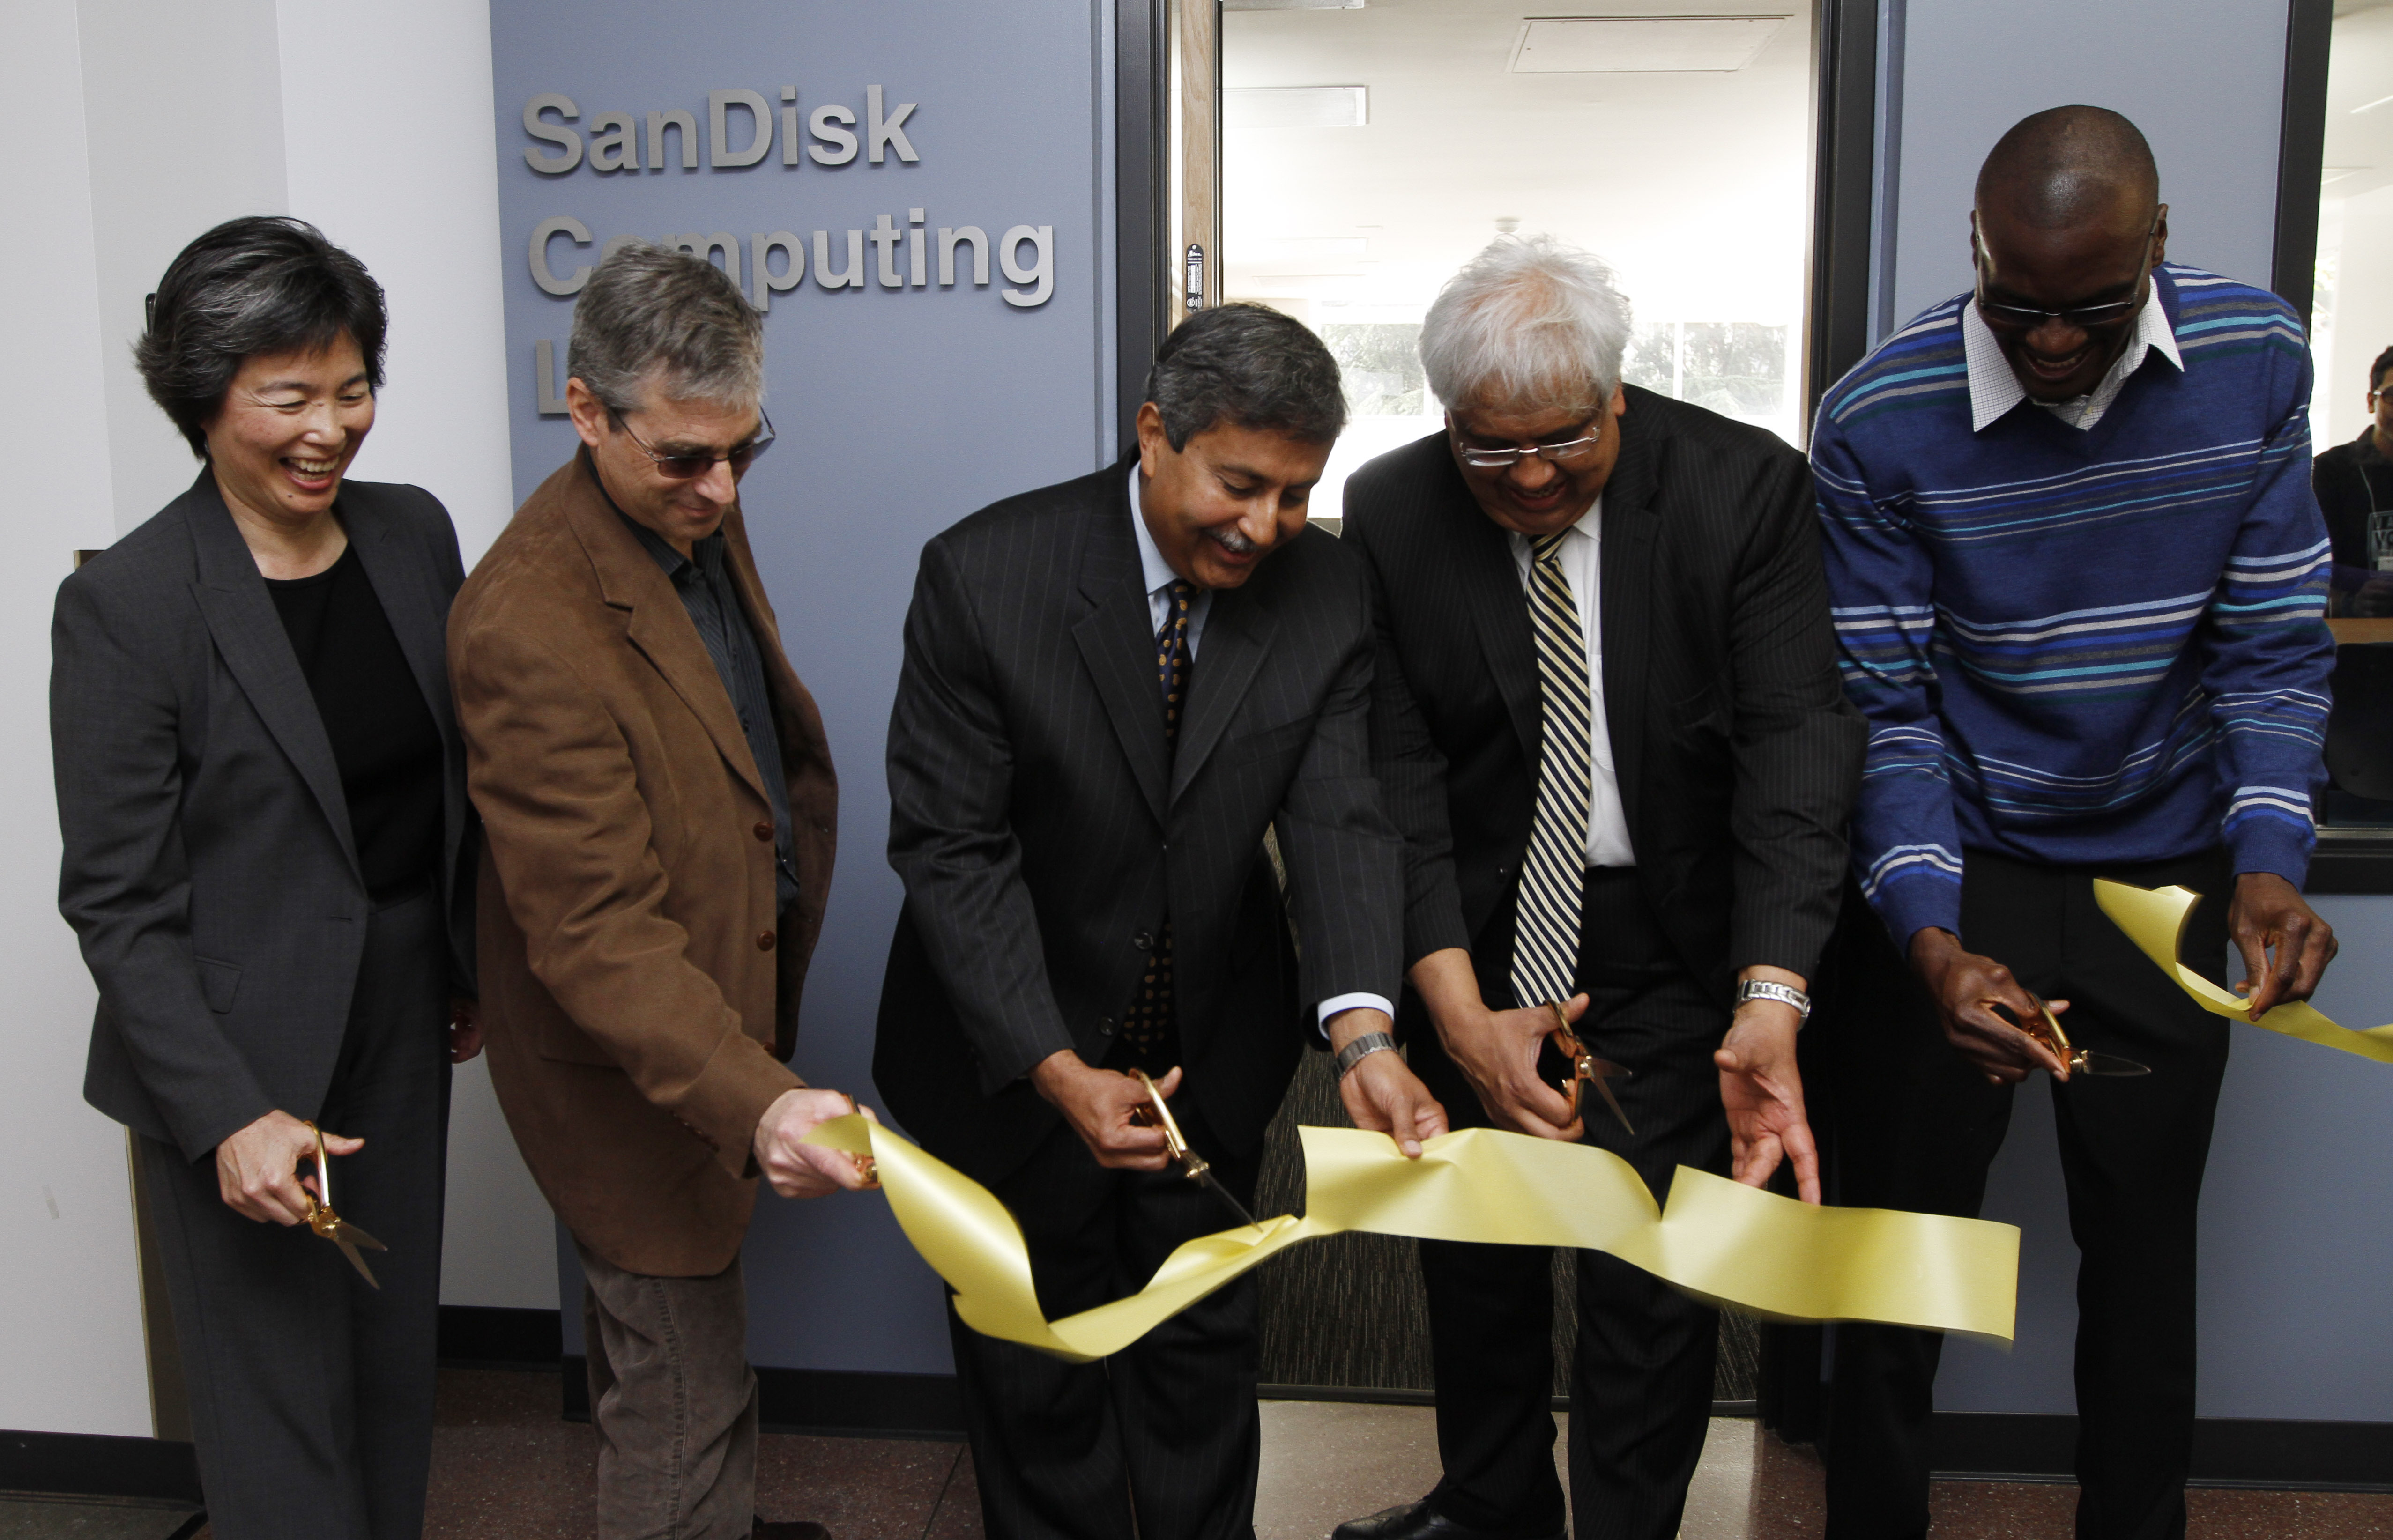 SanDisk's donation to UC Berkeley will fund recently completed renovations to Cory Hall, and the undergraduate student Computing Lab, which has been renamed the SanDisk Computing Lab. (Photo: Business Wire)